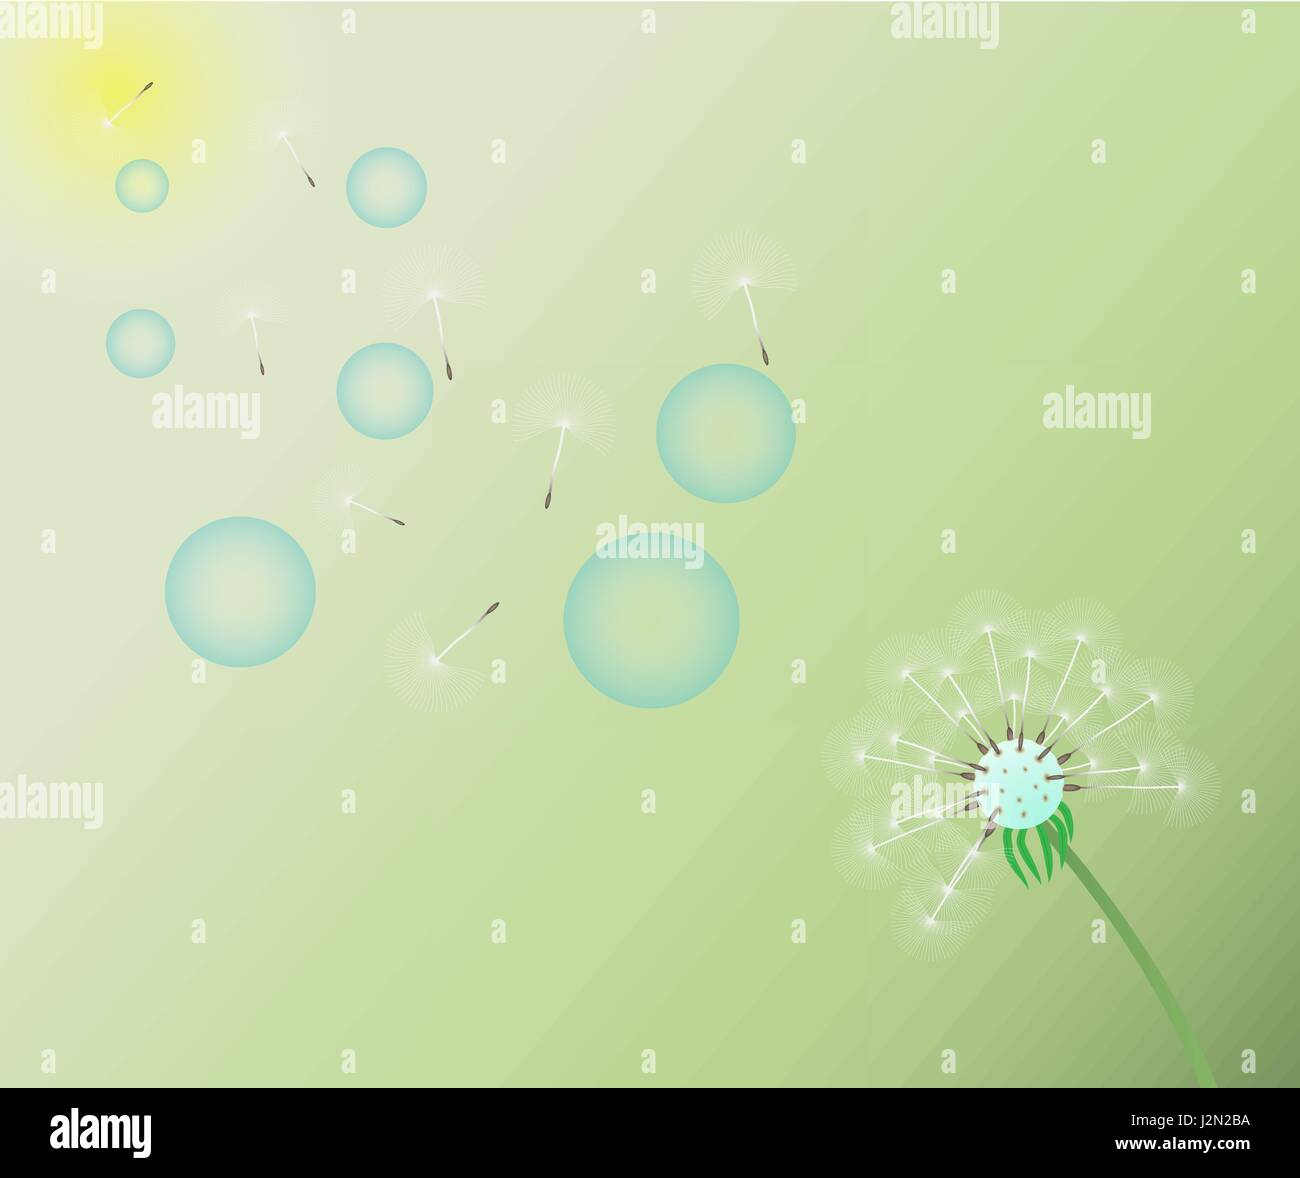 The wind blows bubbles and dandelion seeds. - Stock Vector